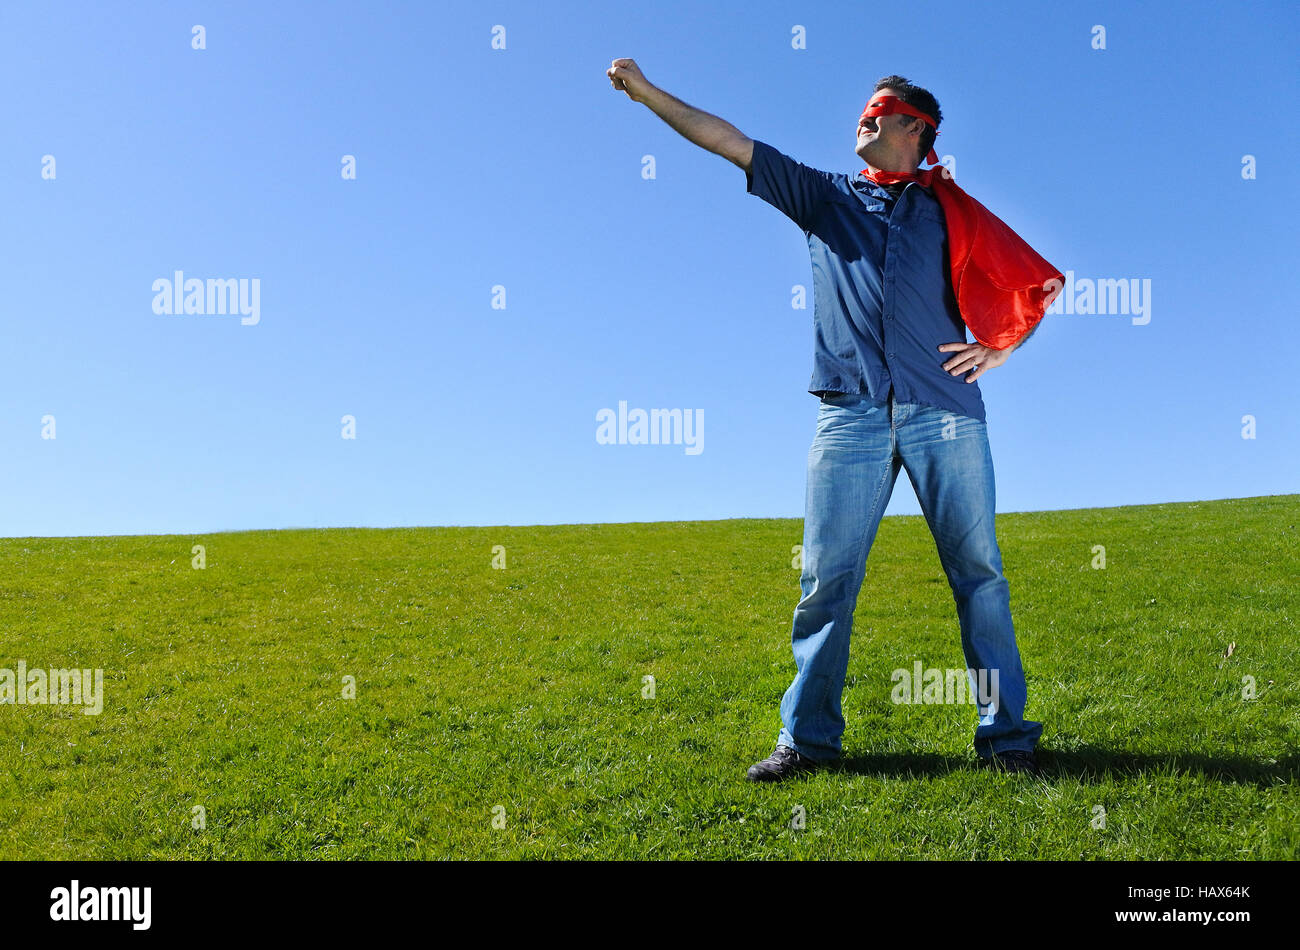 Superhero father against blue sky background  with copy space. concept photo of Super hero, boy power,parenthood - Stock Image